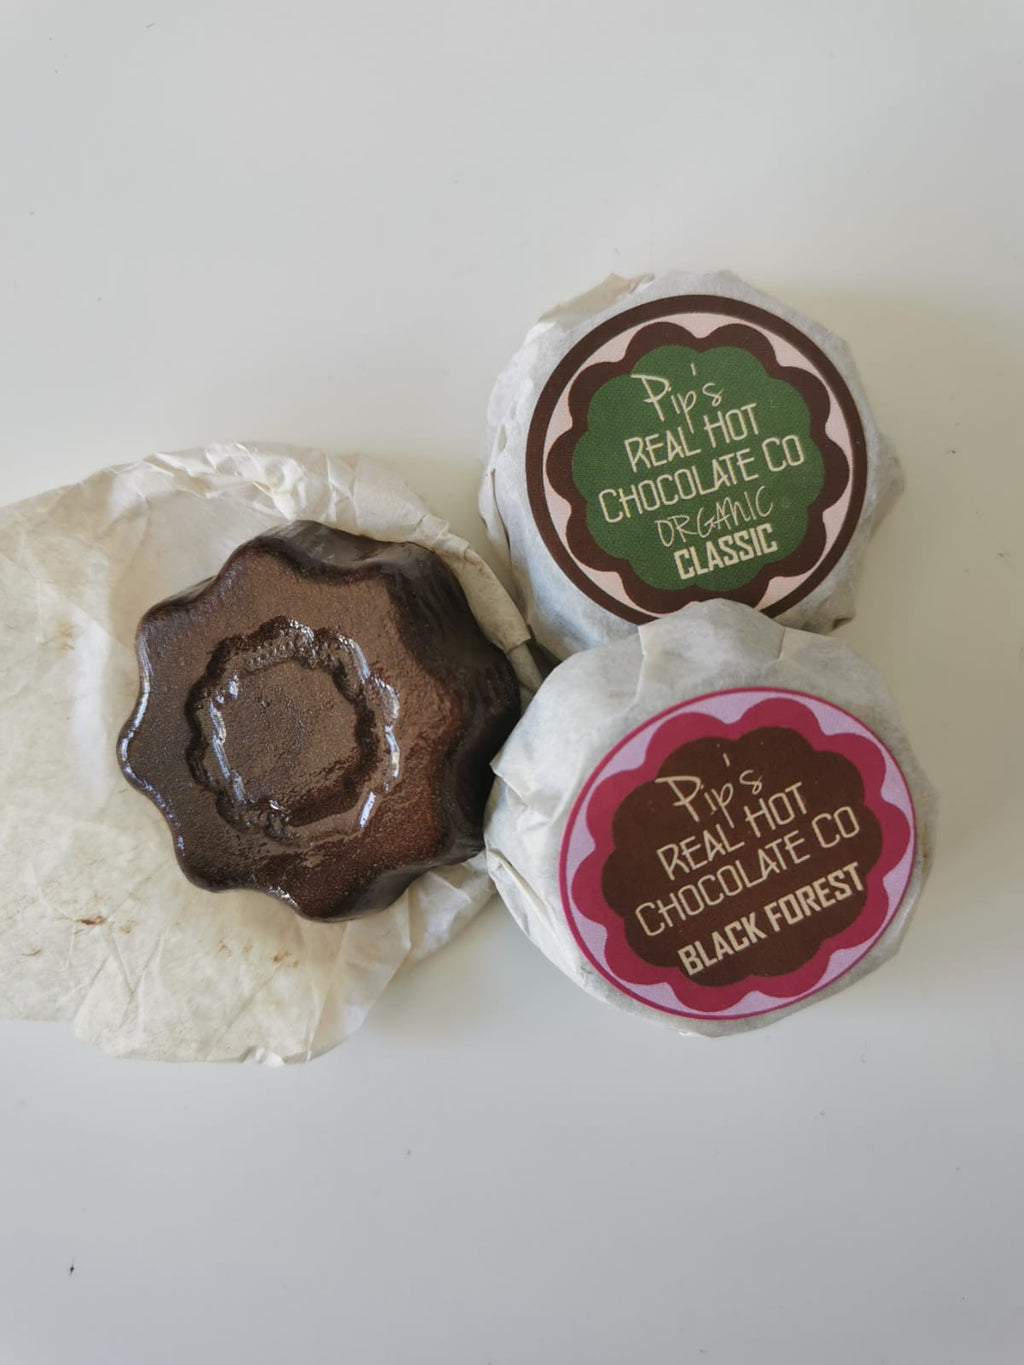 Pip's Real Hot Chocolate Coins